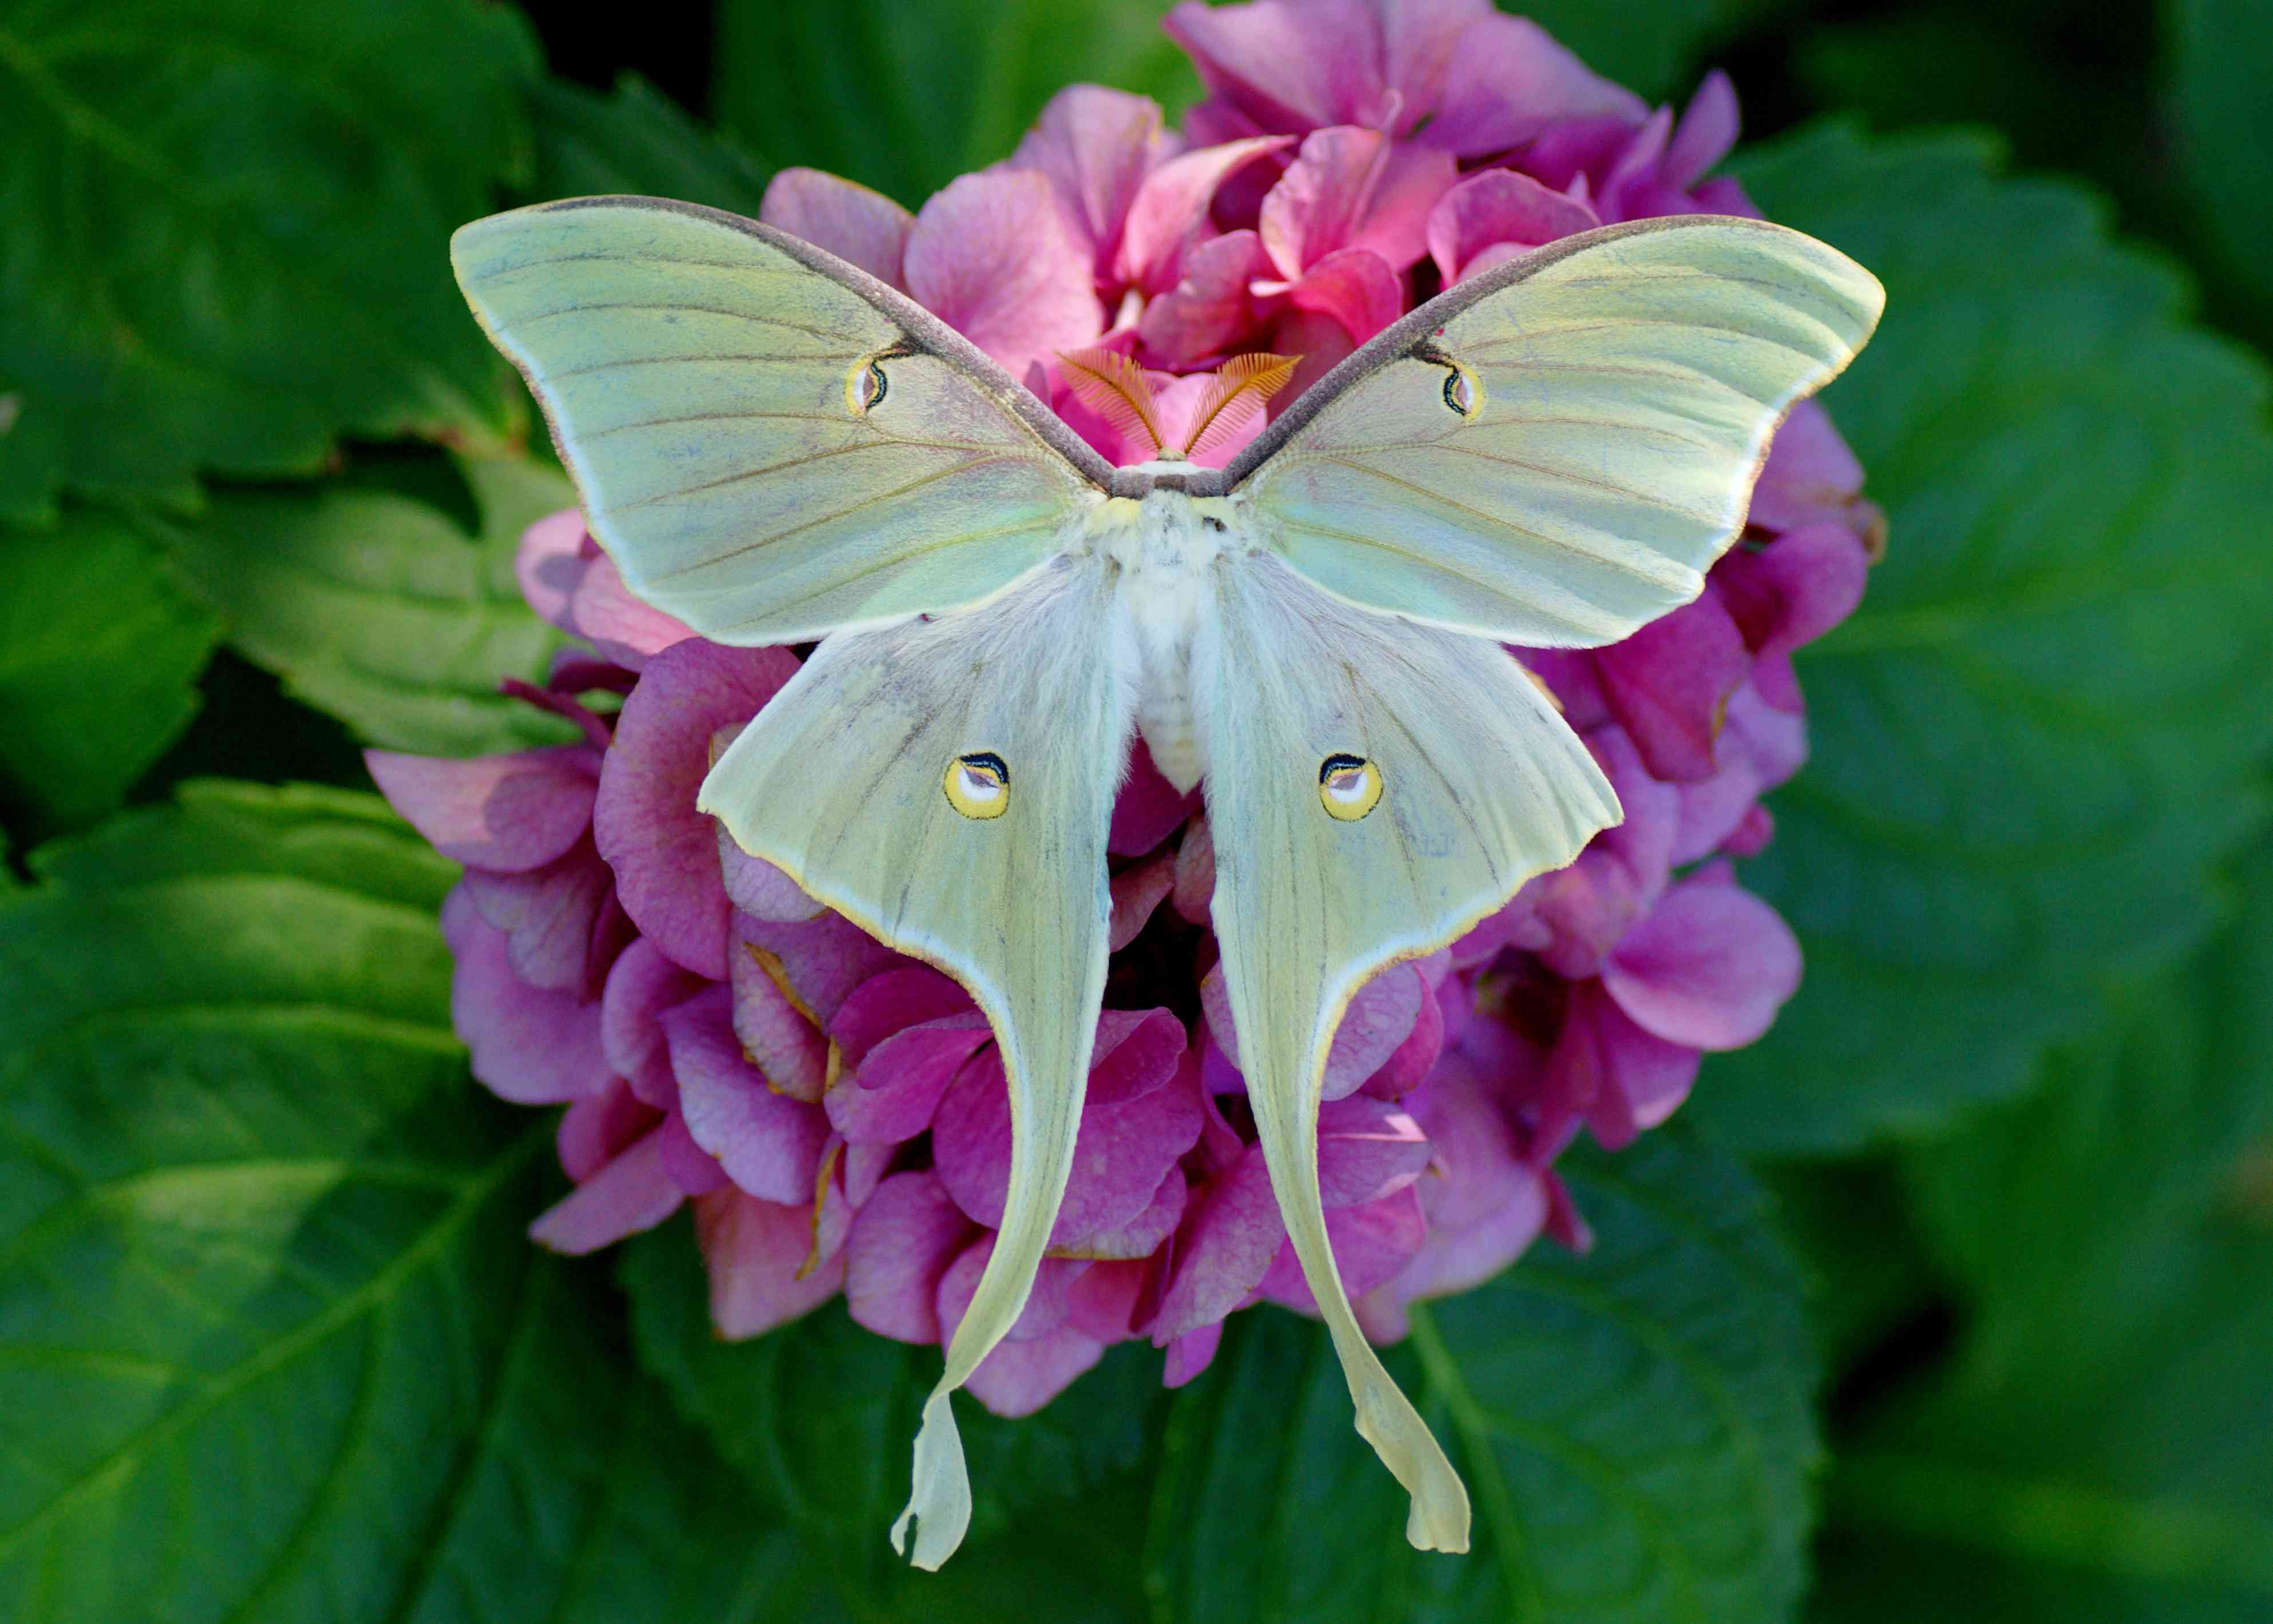 A light green moth with large wings sits on a pink flower